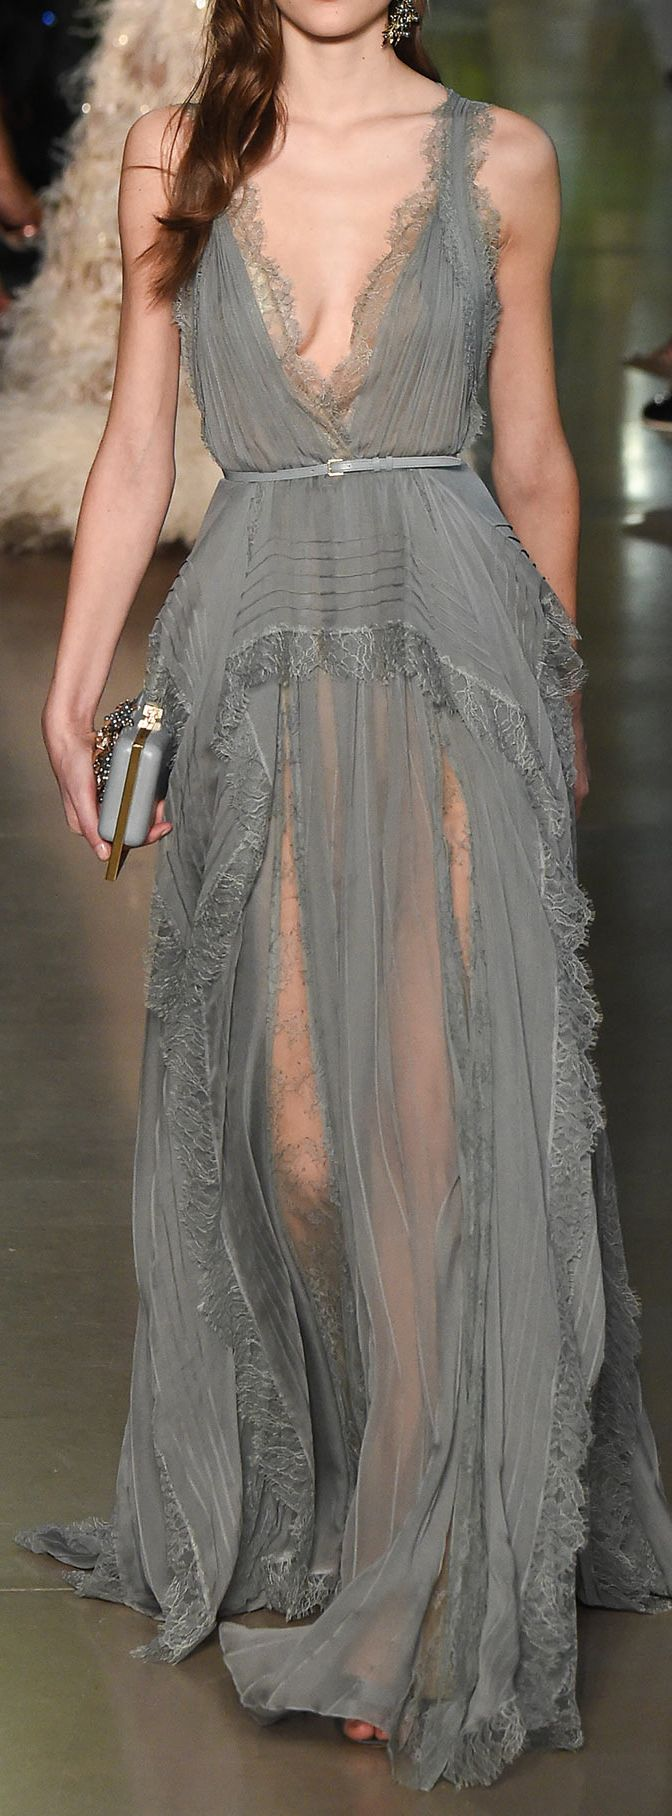 5/30/15 Elie Sabb is my inspiration. I love how he uses so many different textures to create amazing dresses